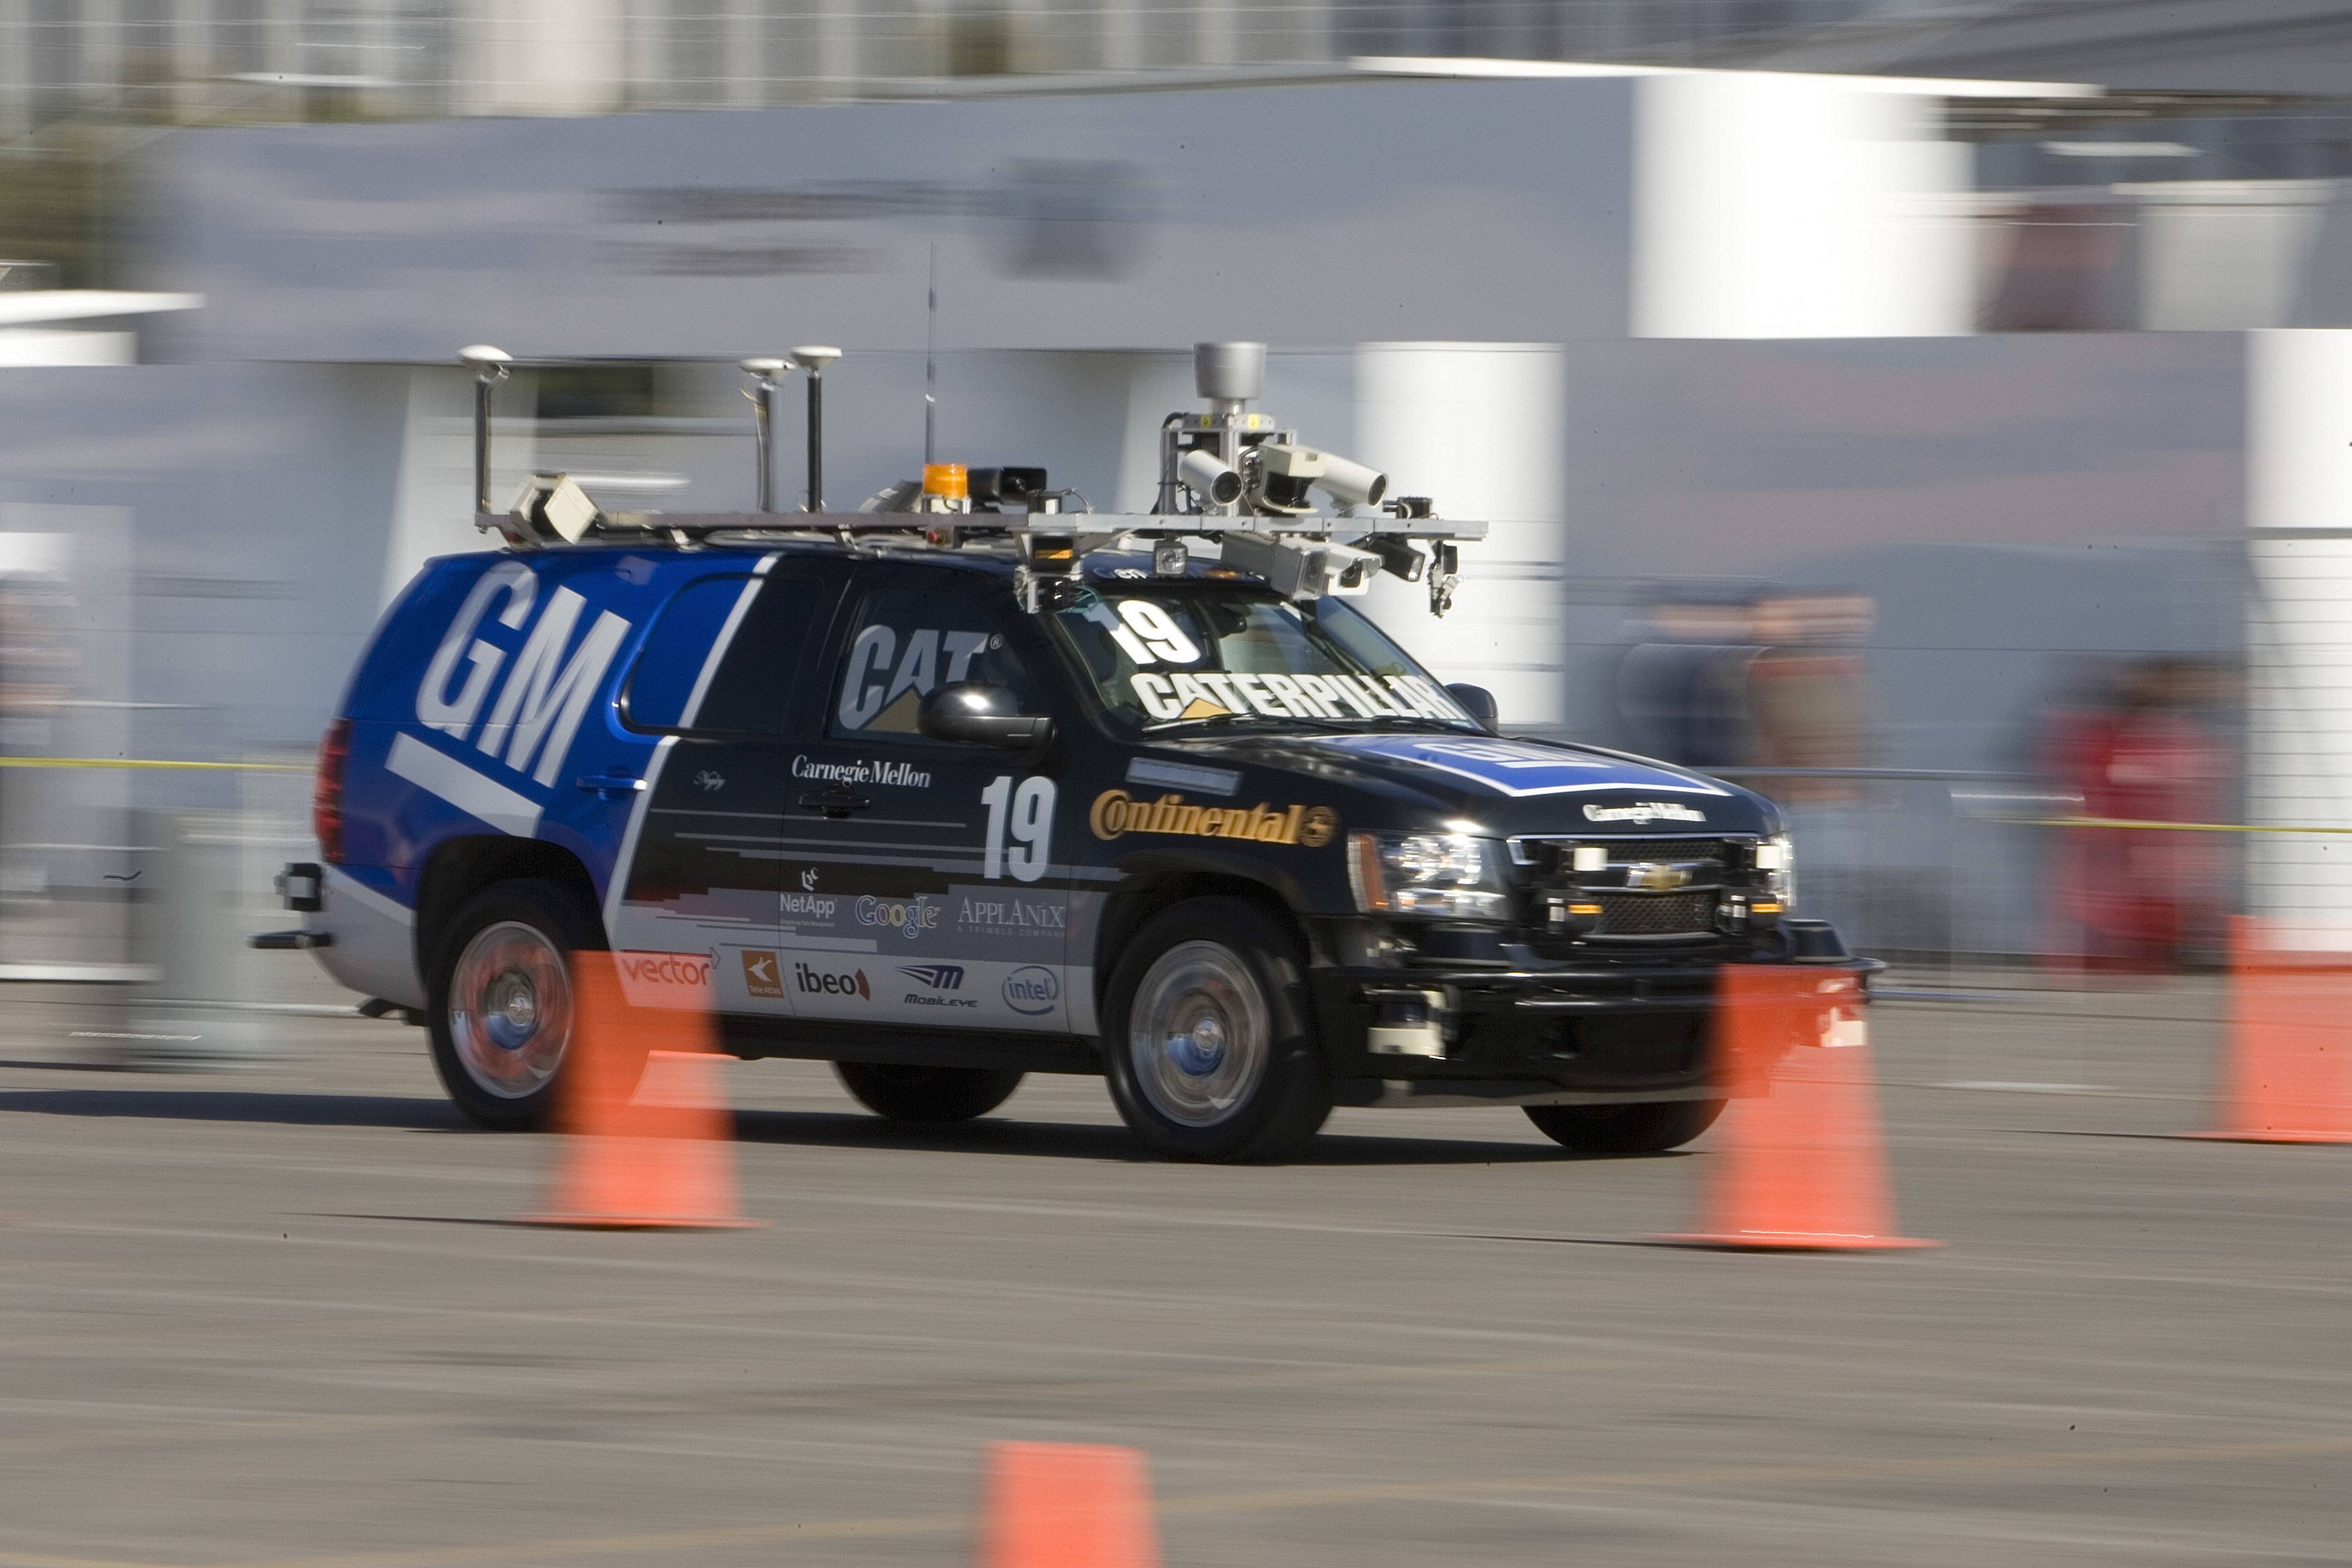 An early self-driving car from 2008, driving around a test facility not too dissimilar to the one in Detroit.